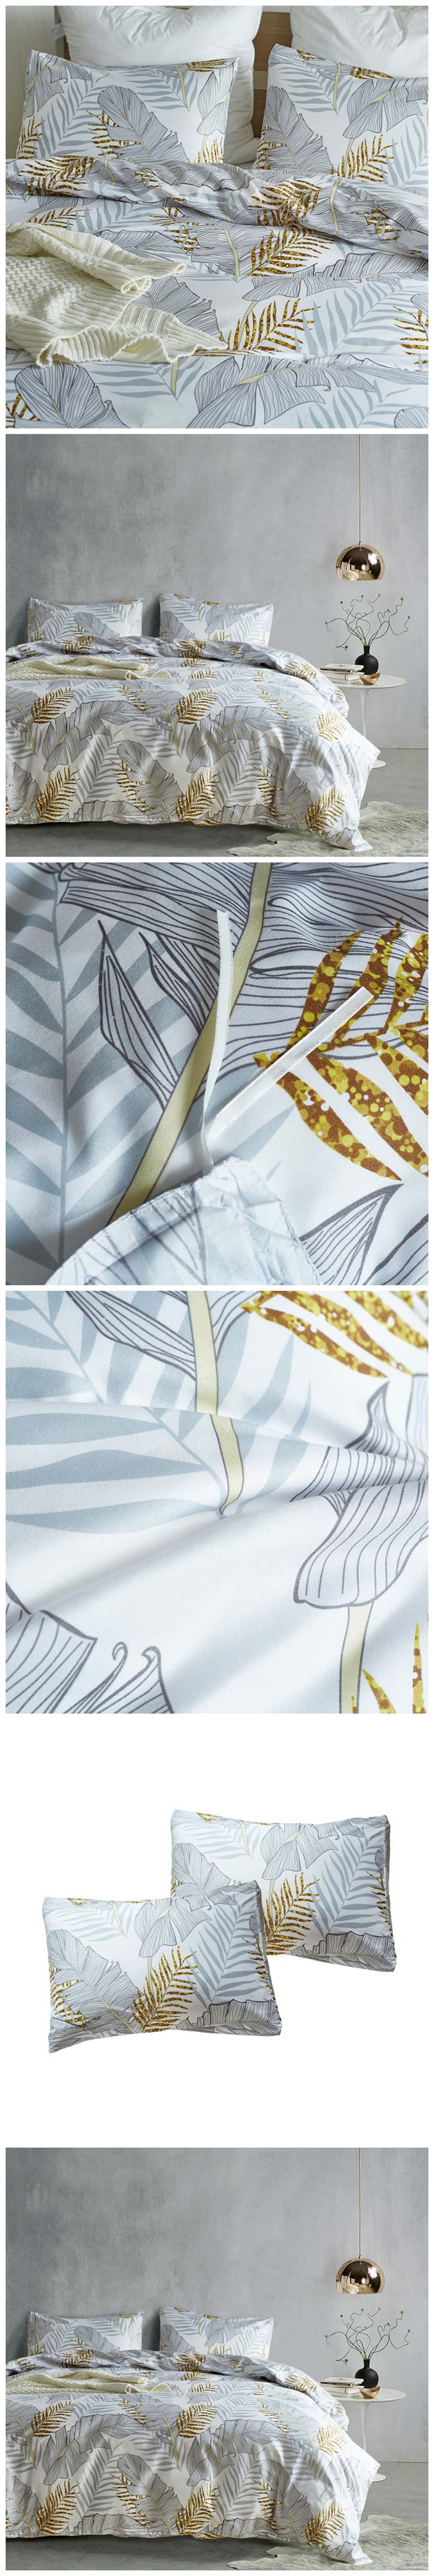 China Supplier Wholesale product Printed Bedding Set